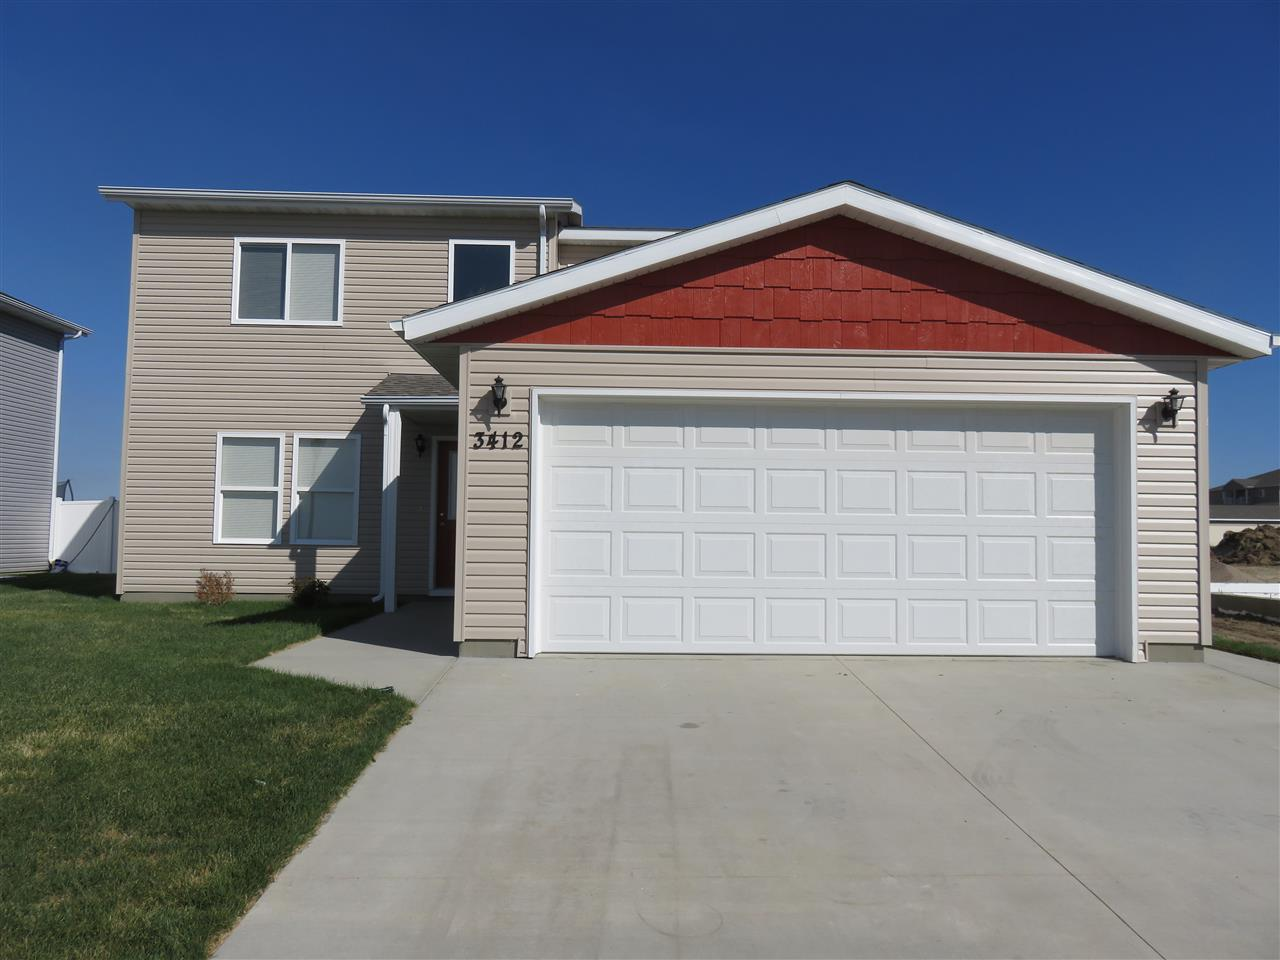 3412 20TH AVE NW, Minot, ND 58703